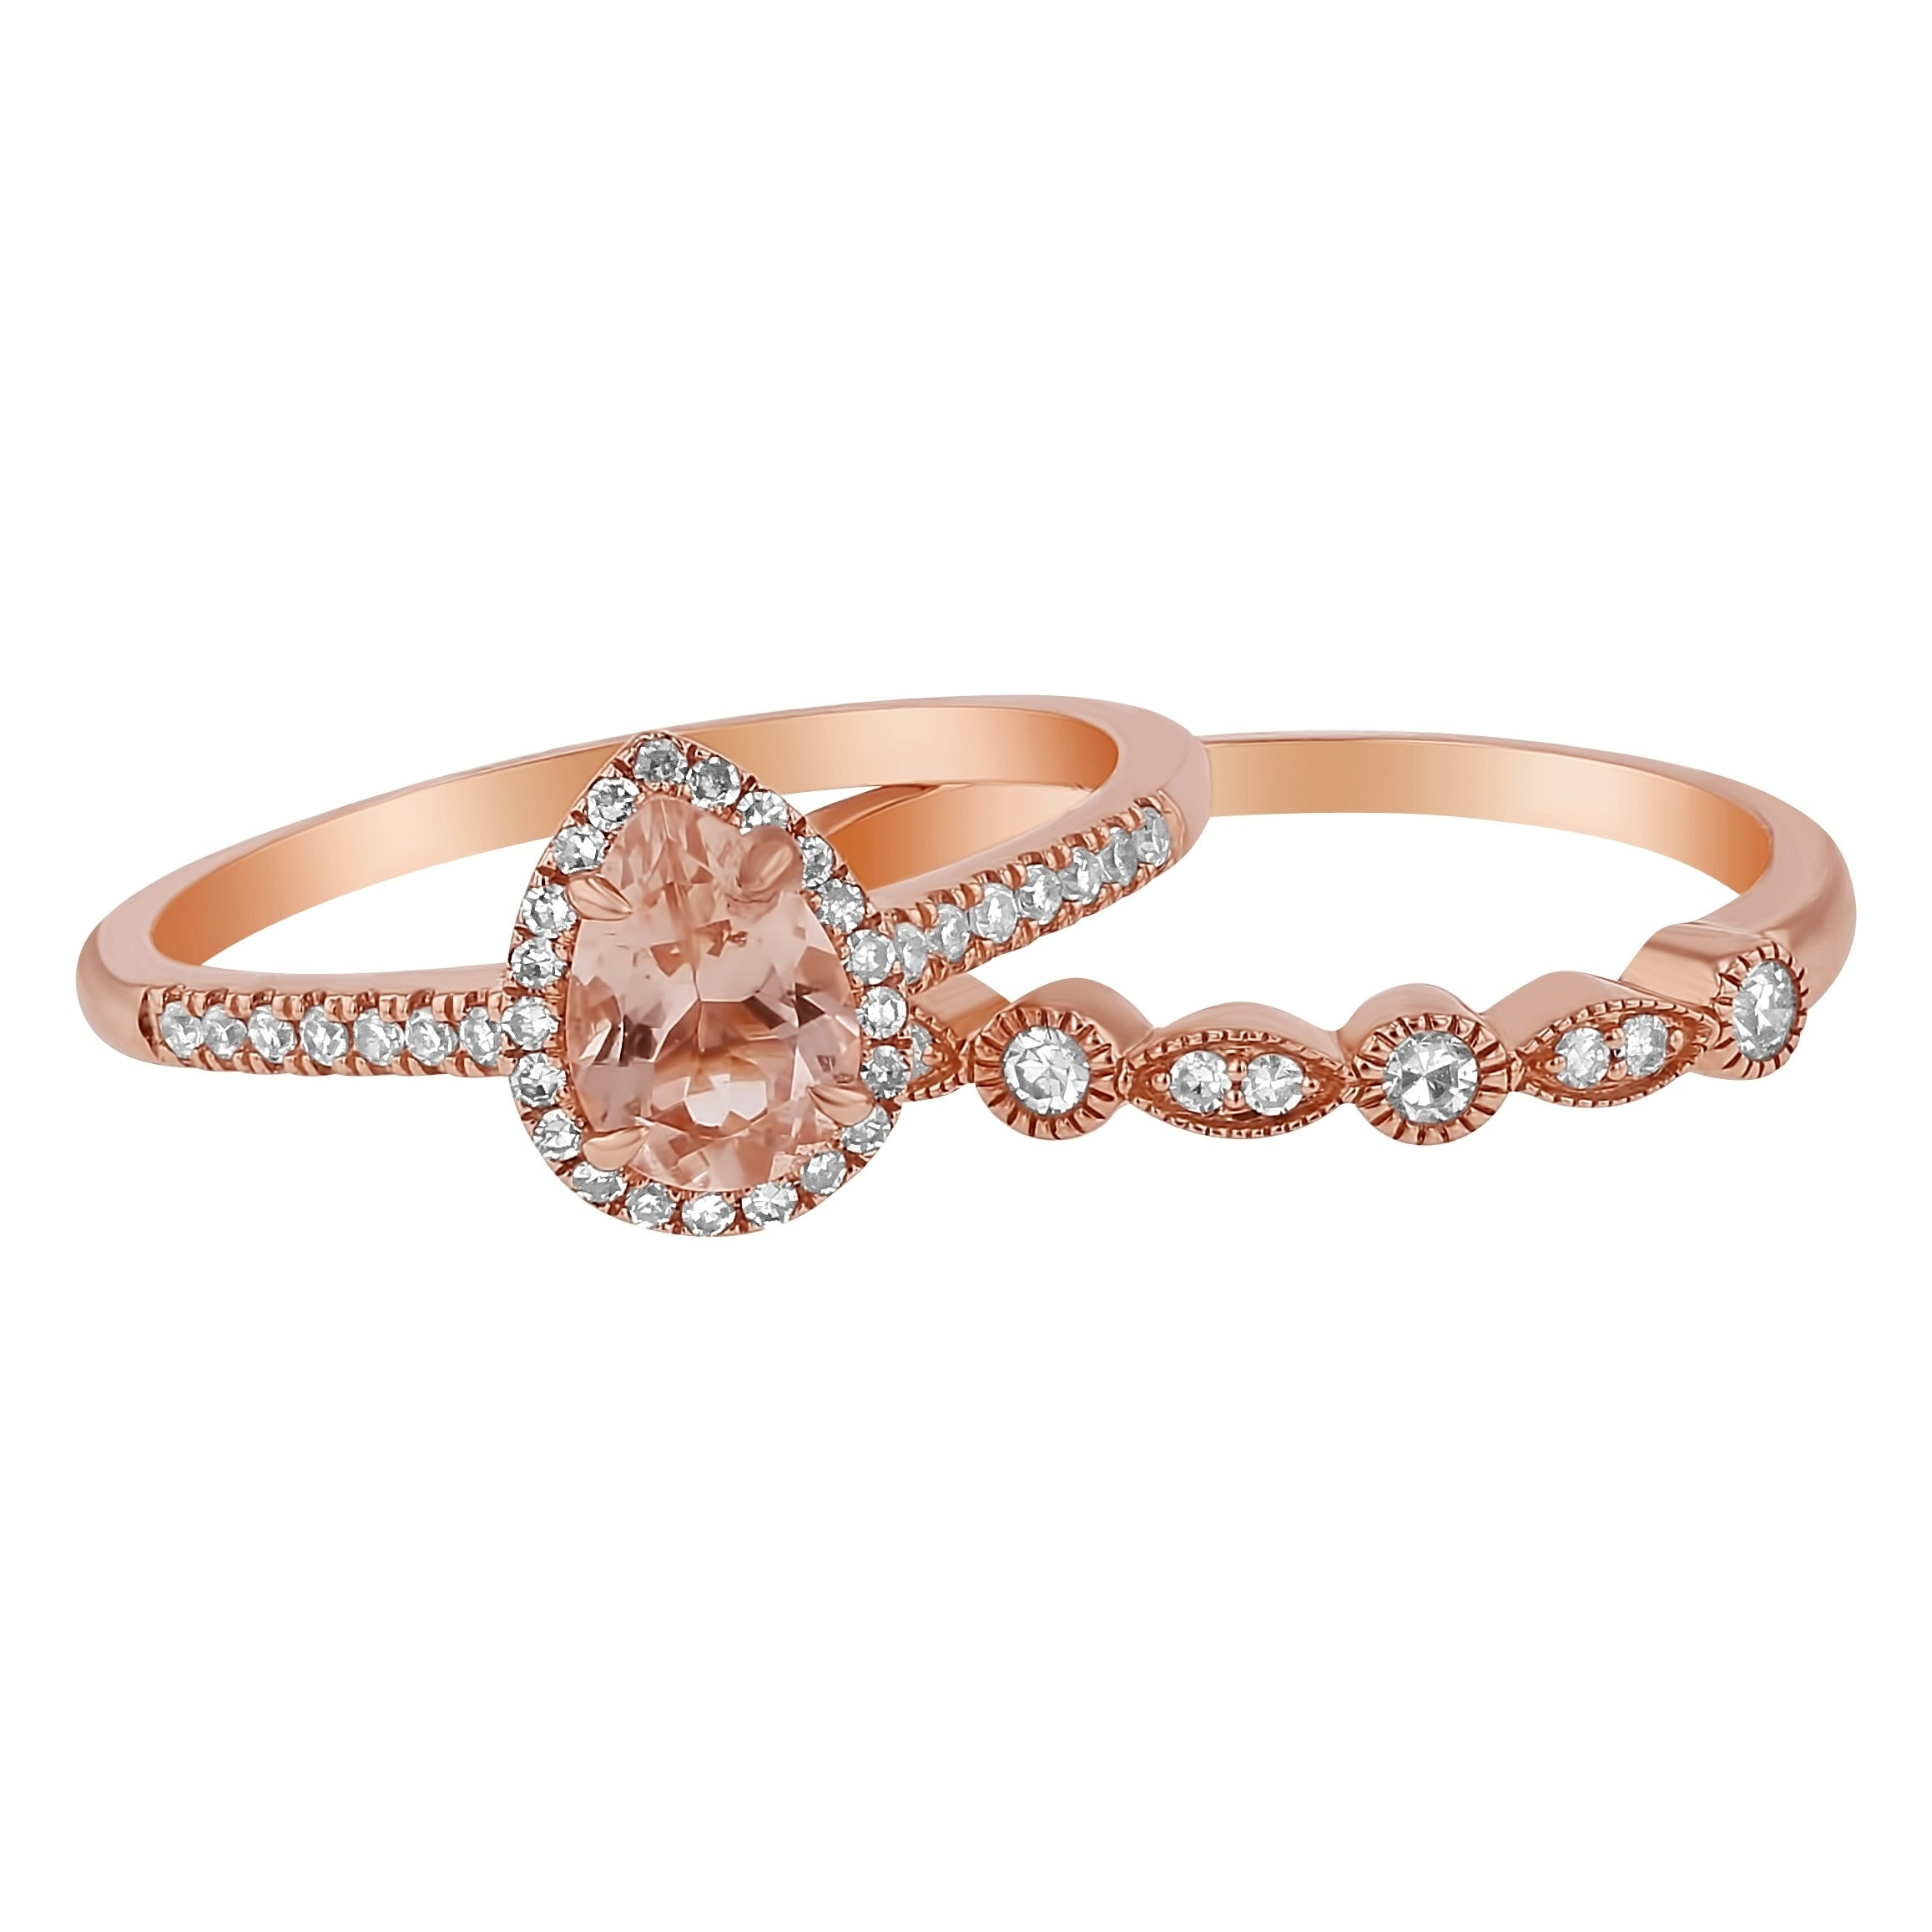 rose rings engagement it gold ring vote put now diamond bands style winner today band wedding